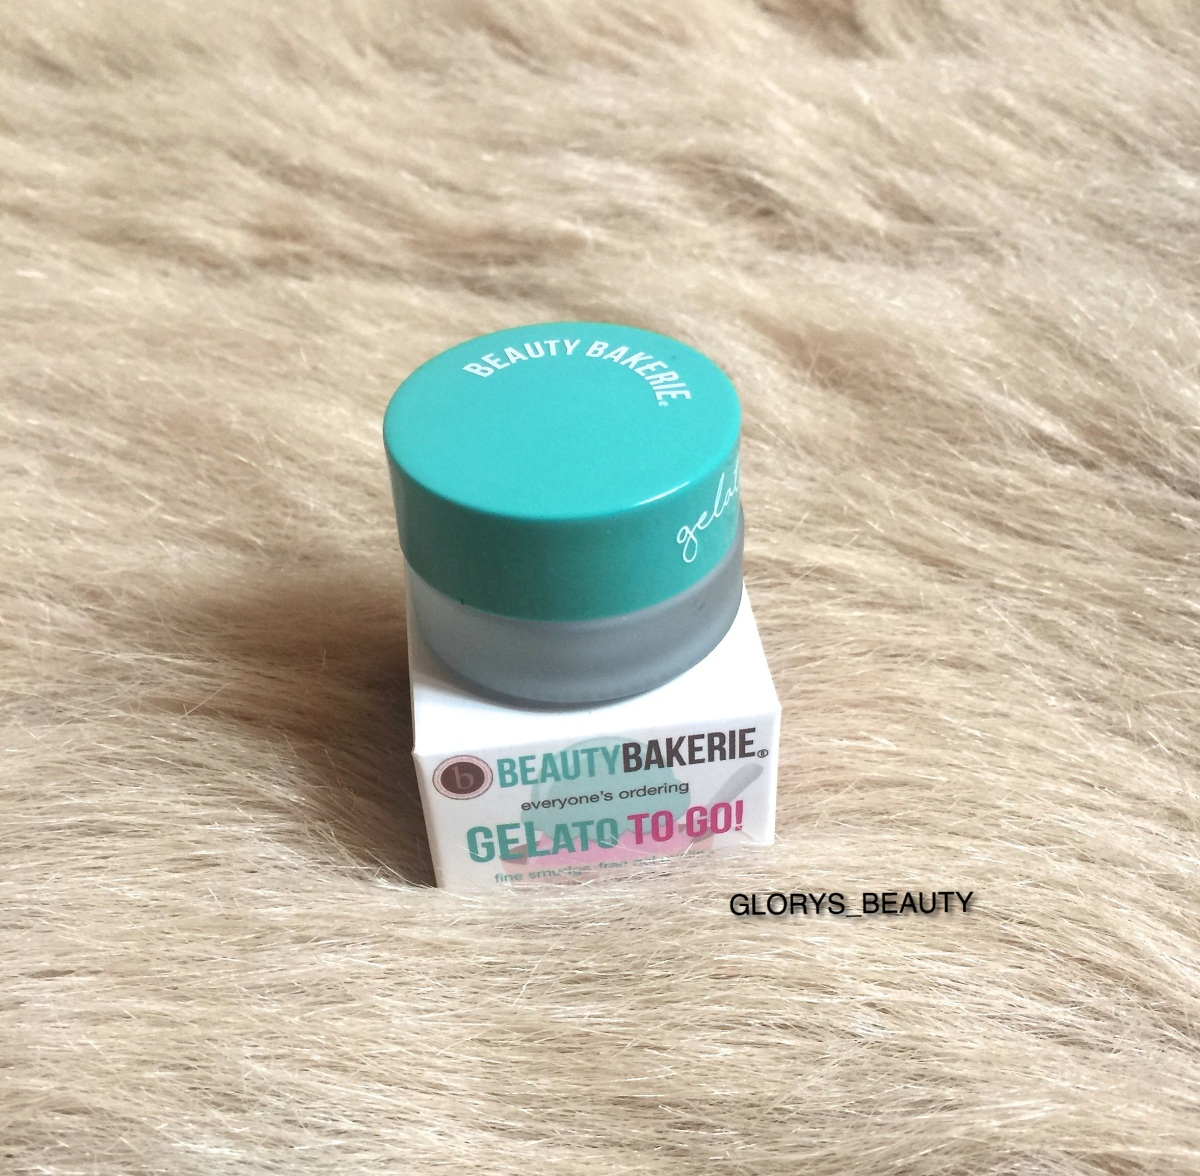 REVIEW - BEAUTY BAKERIE BLACK MILK GELATO.